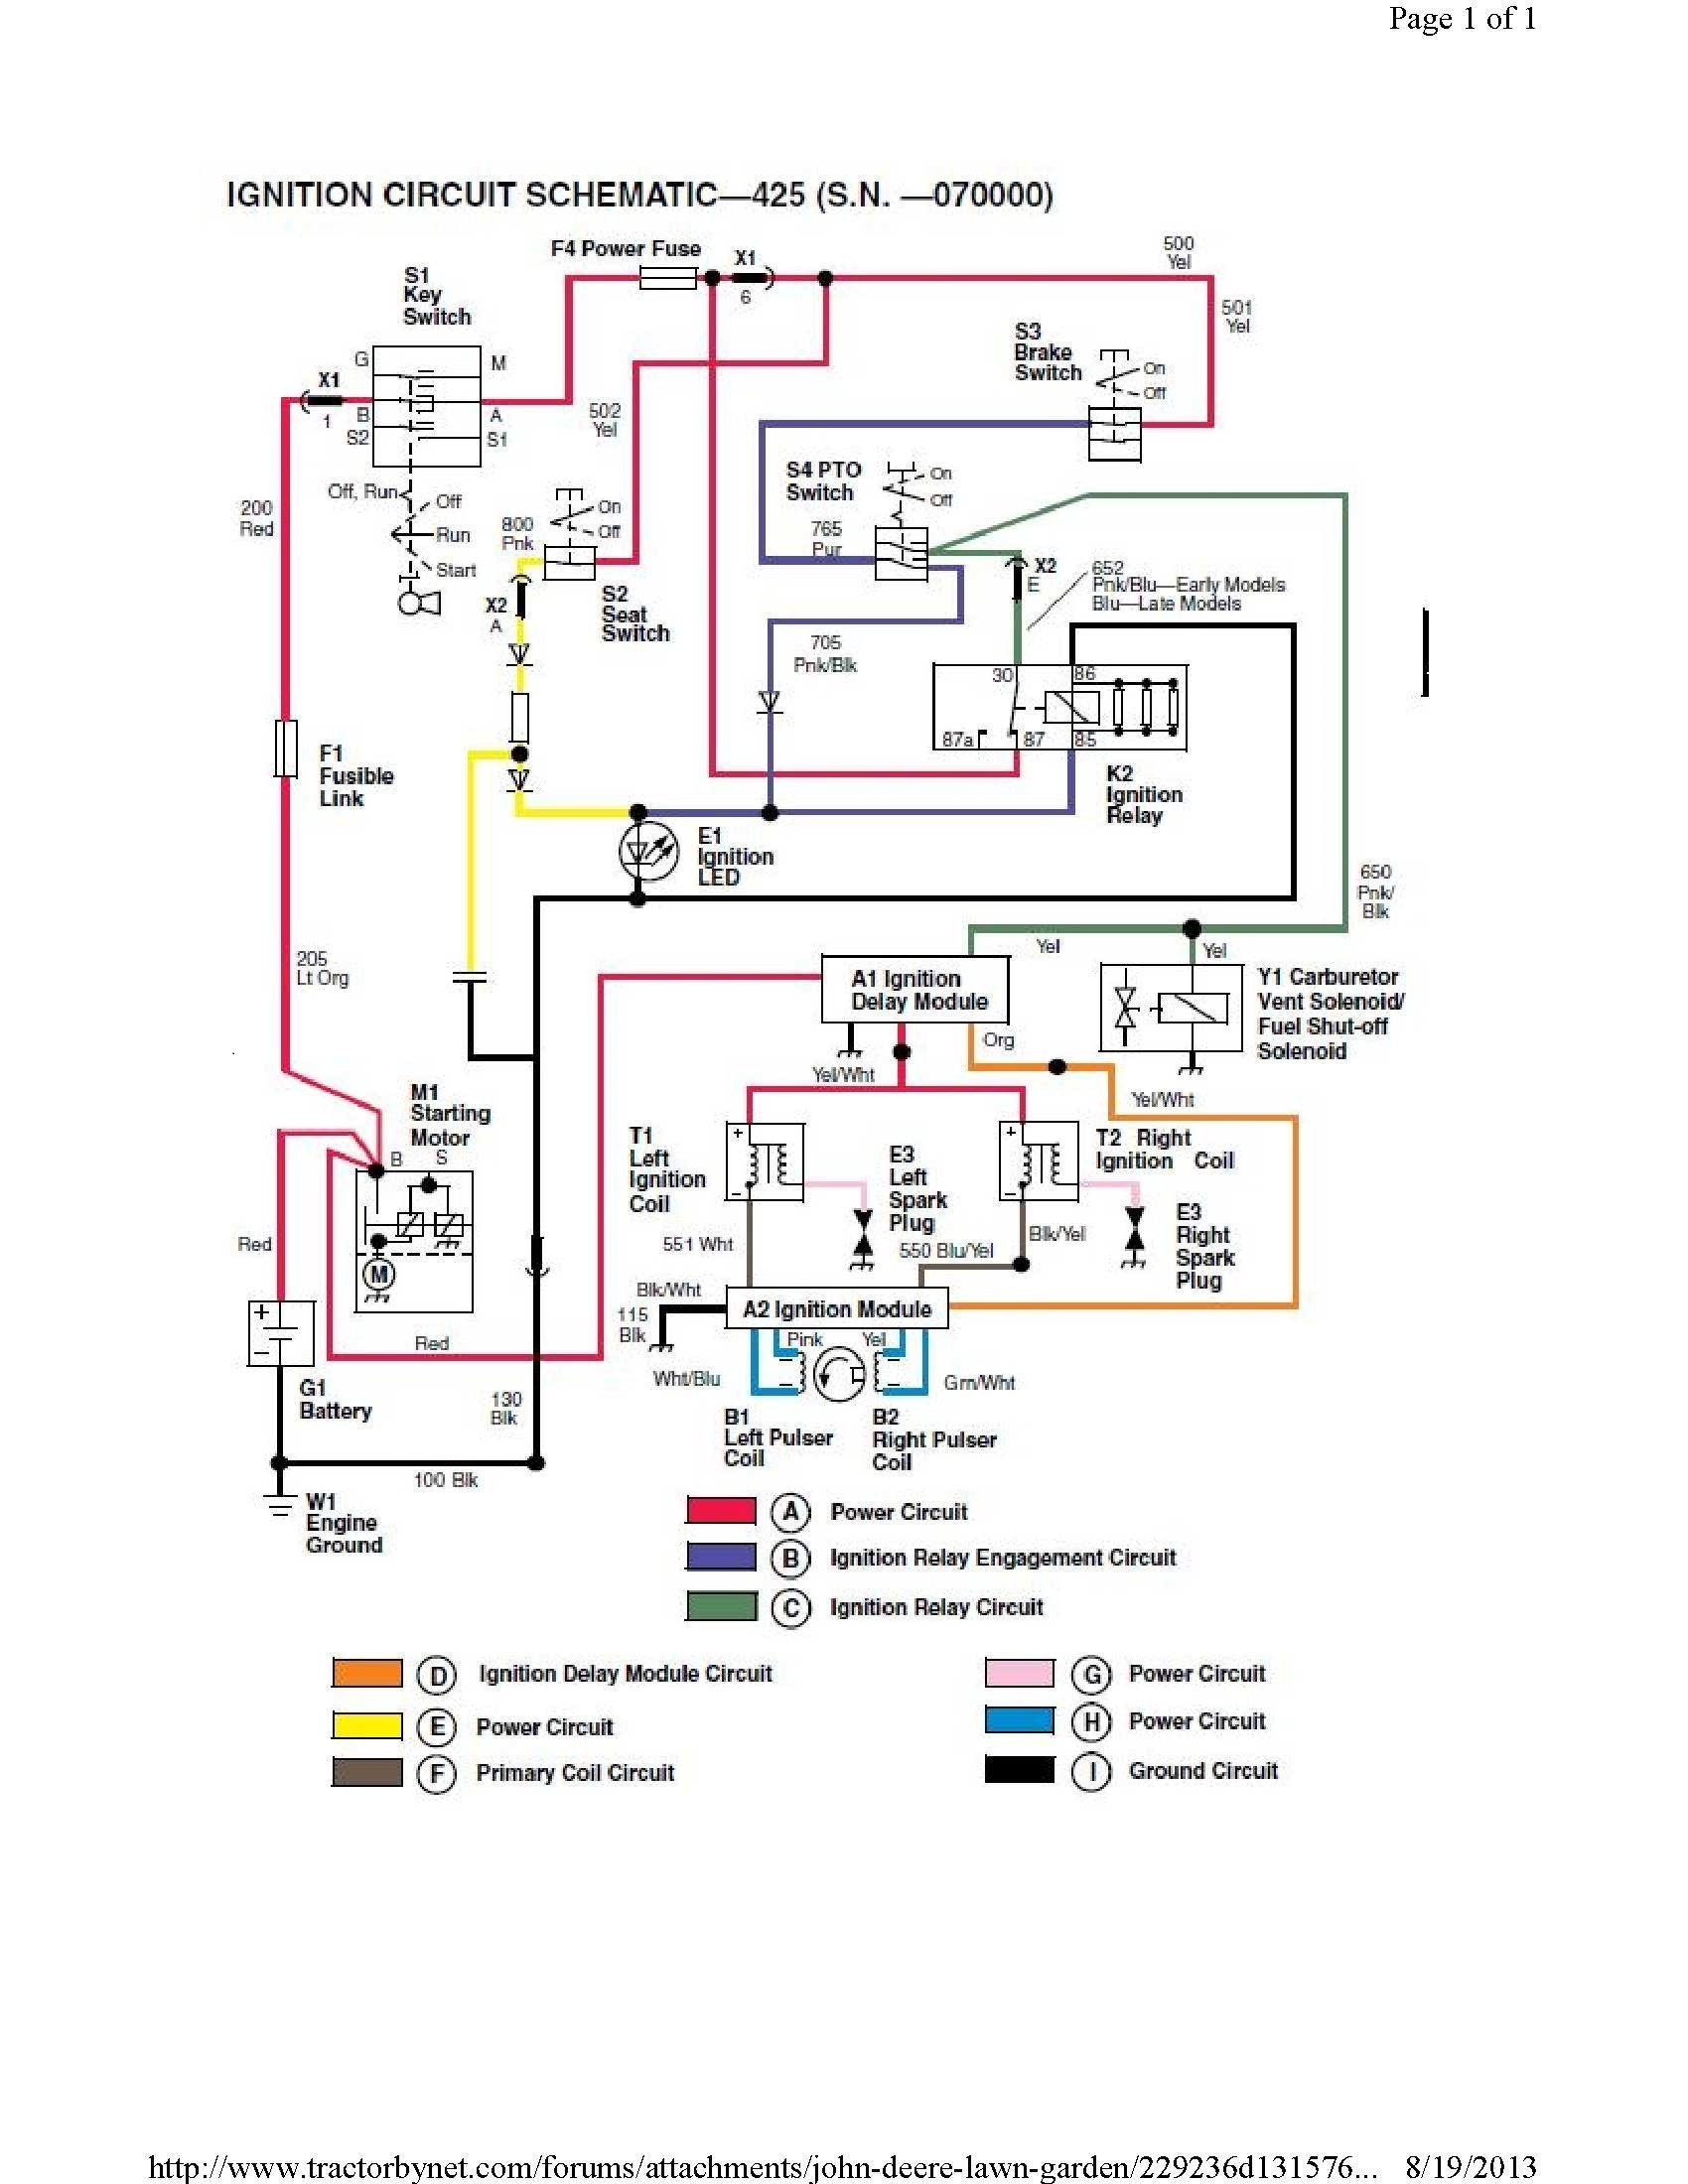 John Deere 460 Wiring Diagram | Wiring Schematic Diagram on john deere d140 wiring diagram, john deere la140 wiring diagram, john deere x475 wiring diagram, john deere z445 wiring diagram, john deere x324 wiring diagram, john deere la125 wiring diagram, john deere z245 wiring diagram, john deere x304 wiring diagram, john deere d170 wiring diagram, john deere x495 wiring diagram, john deere lx280 wiring diagram, john deere x740 wiring diagram, john deere la115 wiring diagram, john deere x534 wiring diagram, john deere x720 wiring diagram, john deere x360 wiring diagram, john deere la165 wiring diagram, john deere g100 wiring diagram, john deere la120 wiring diagram, john deere ignition wiring diagram,